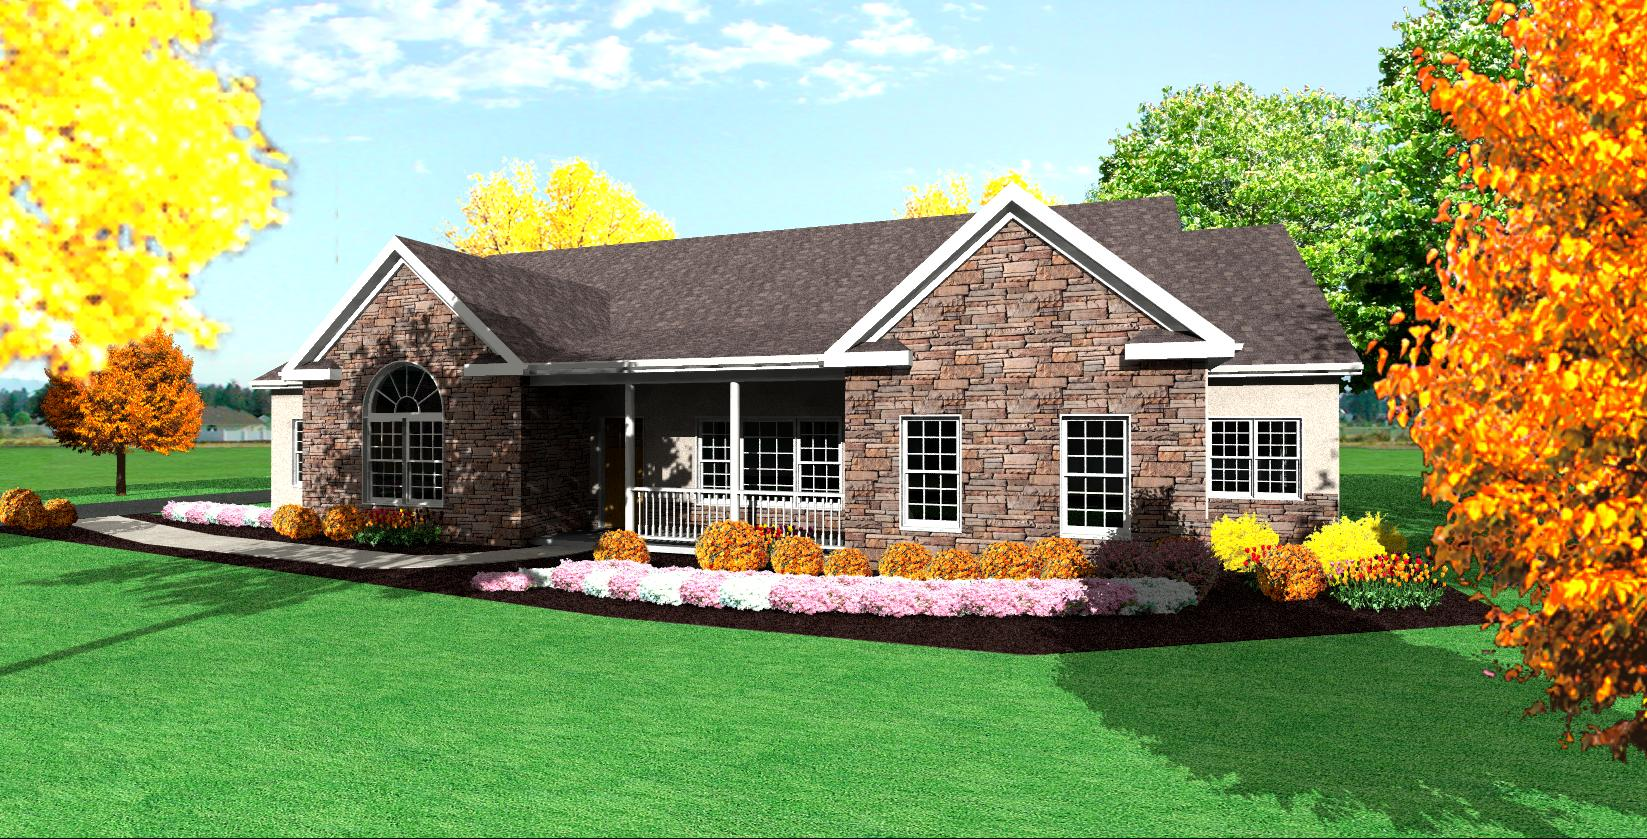 Home Plans Design SINGLE STORY RANCH HOUSE PLANS